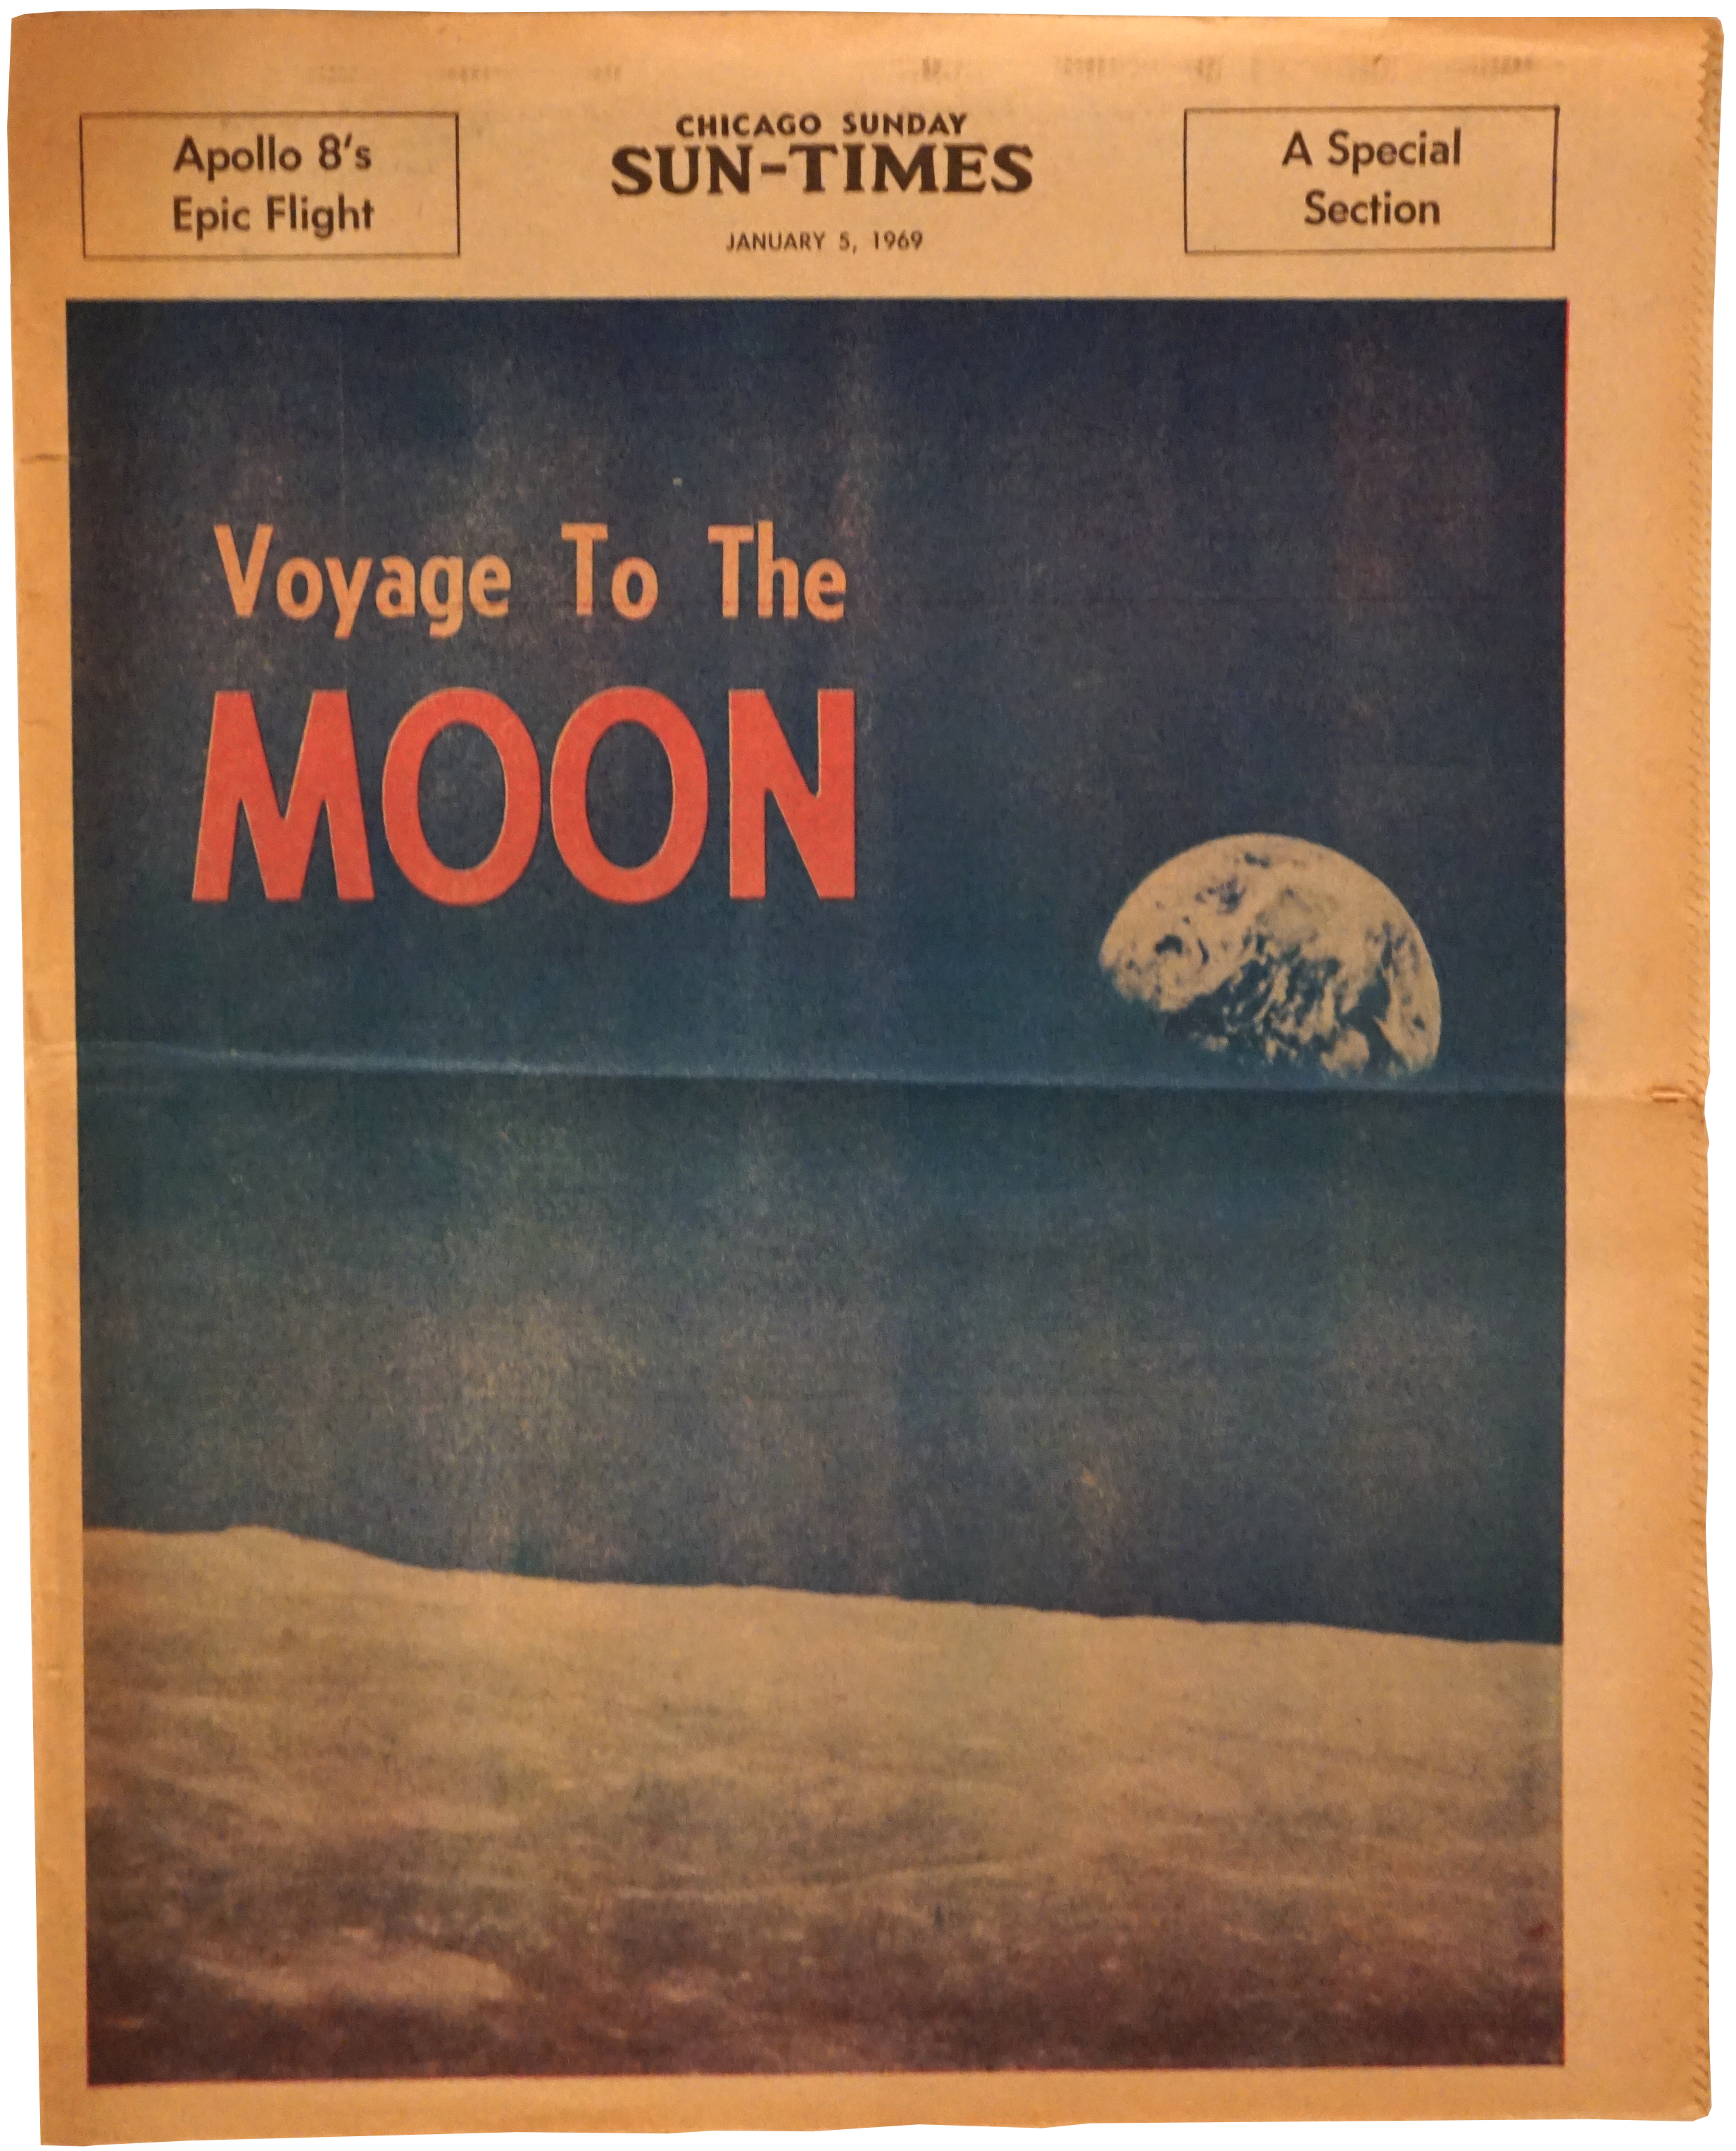 ERM-1968-NEWSPAPER-CHICAGO_SUNDAY_TIMES-010569.png